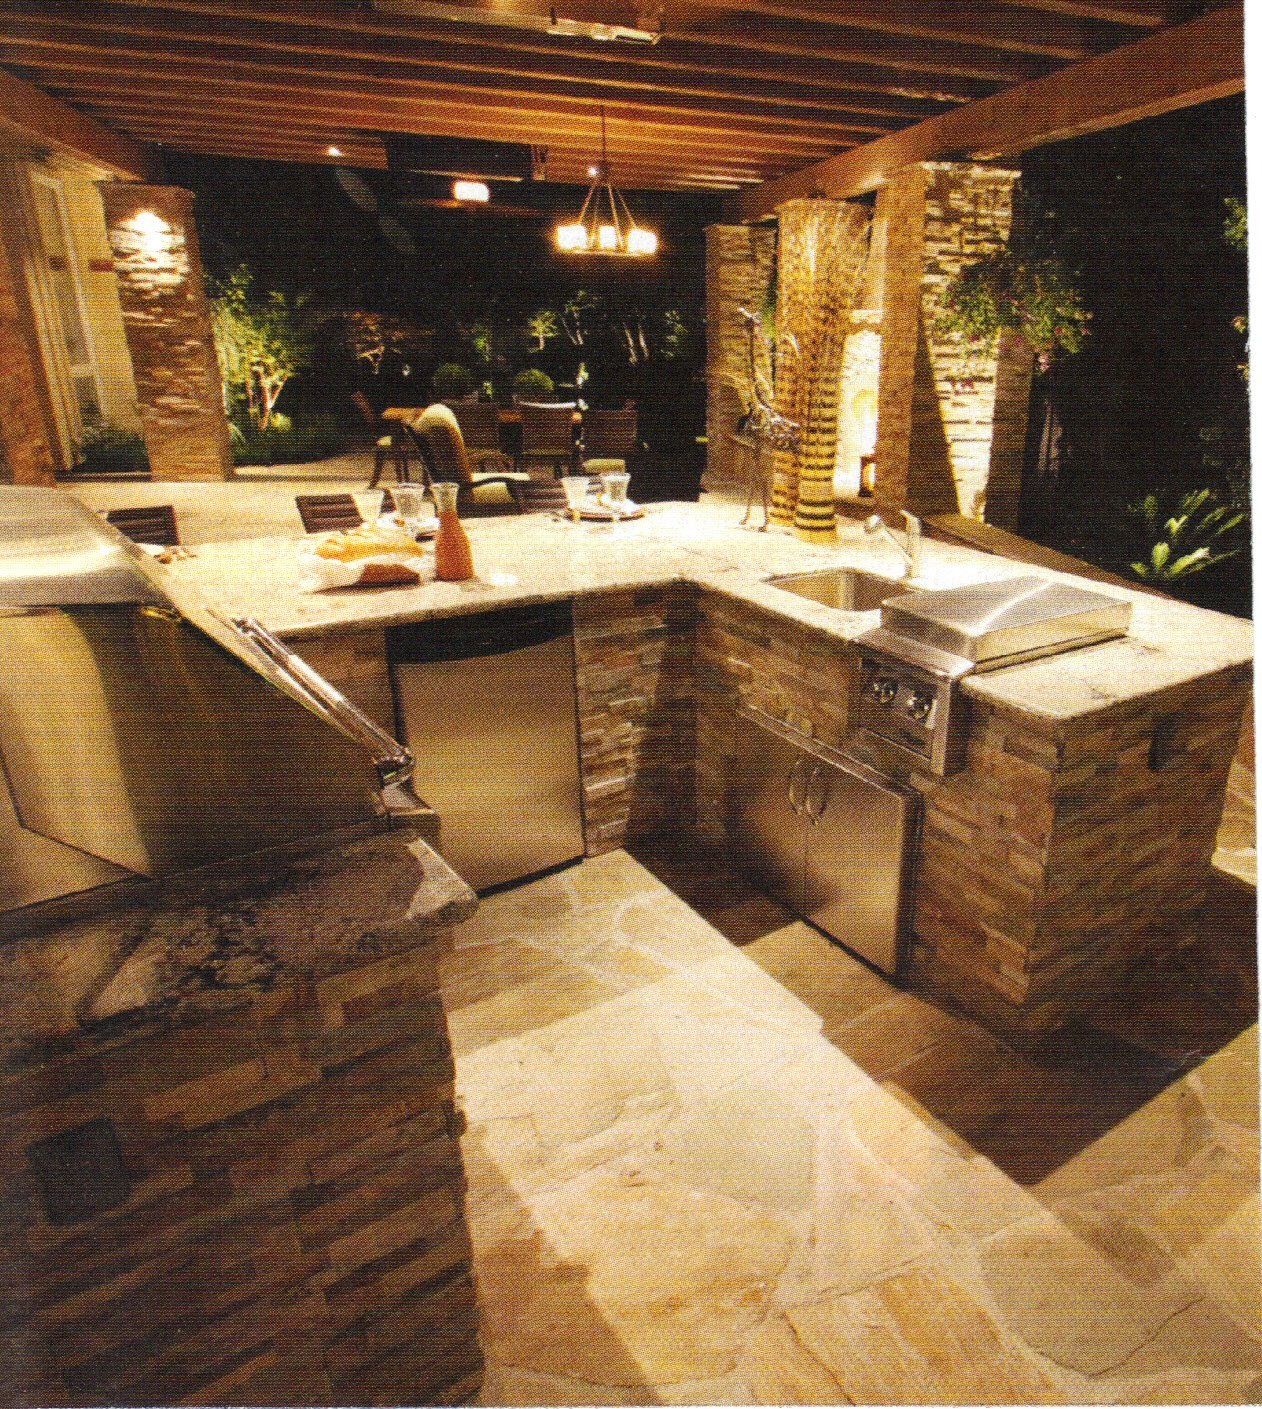 Small Kitchens With Islands For Seating Bedrock Stone Fabrication, Inc.: Outdoor Island Styles